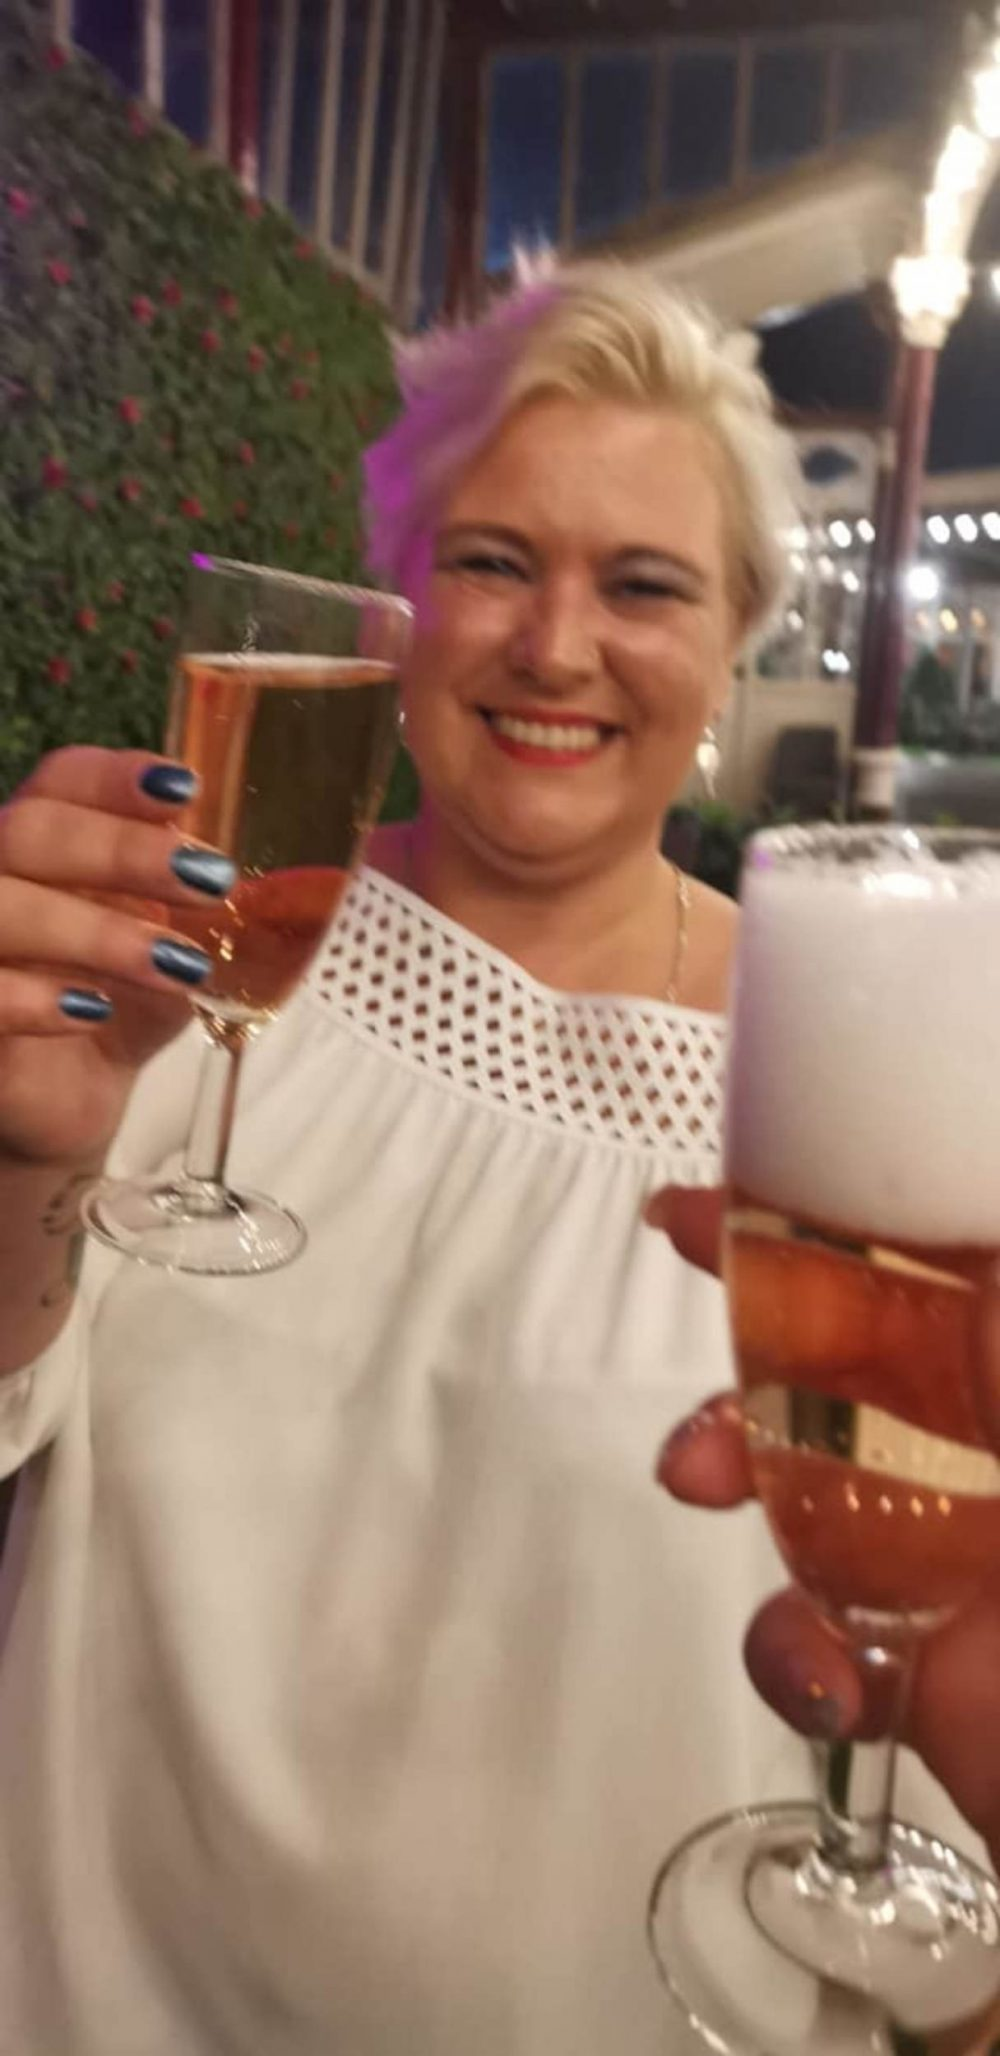 The Brit celebrating her recovery - Health News UK